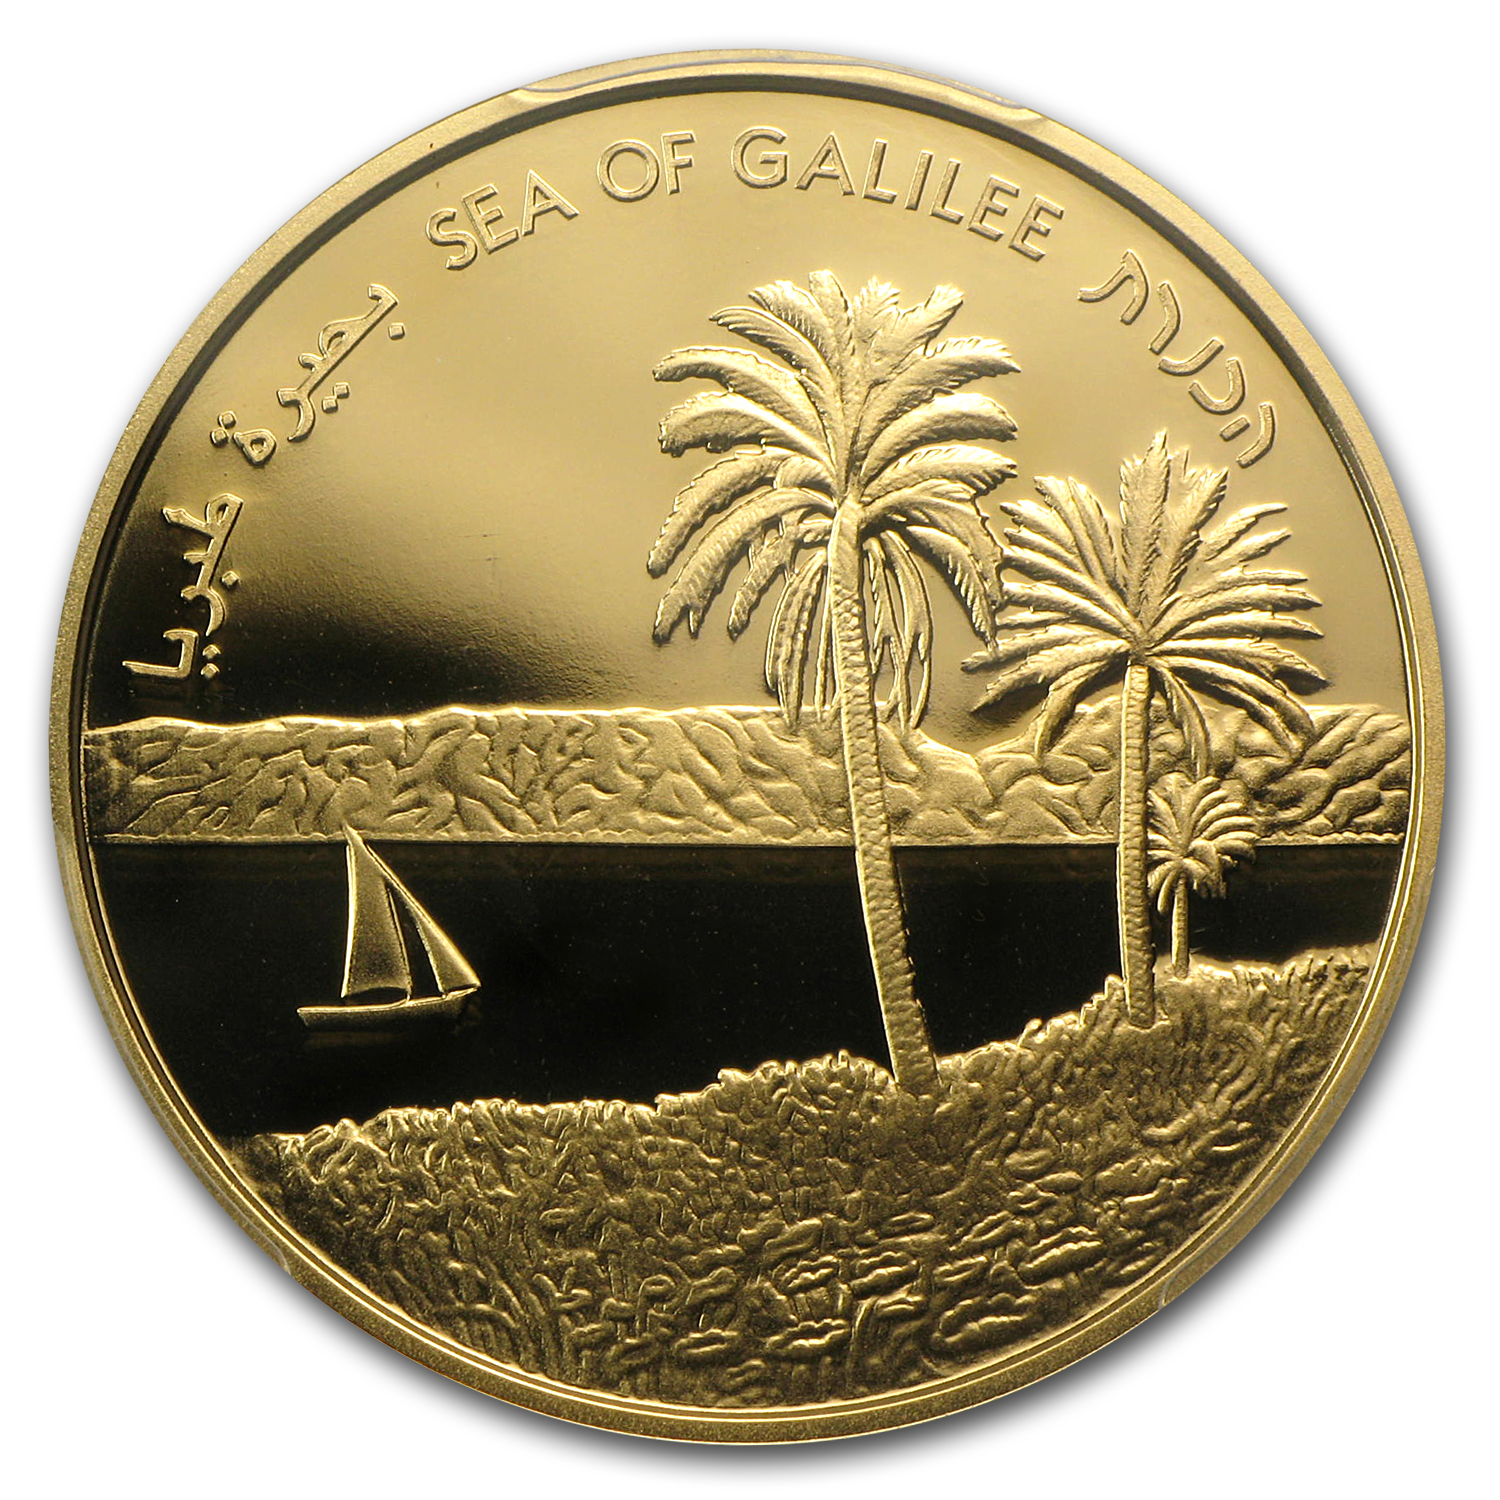 2012 Israel 1/2 oz Gold Sea of Galilee PR-70 PCGS